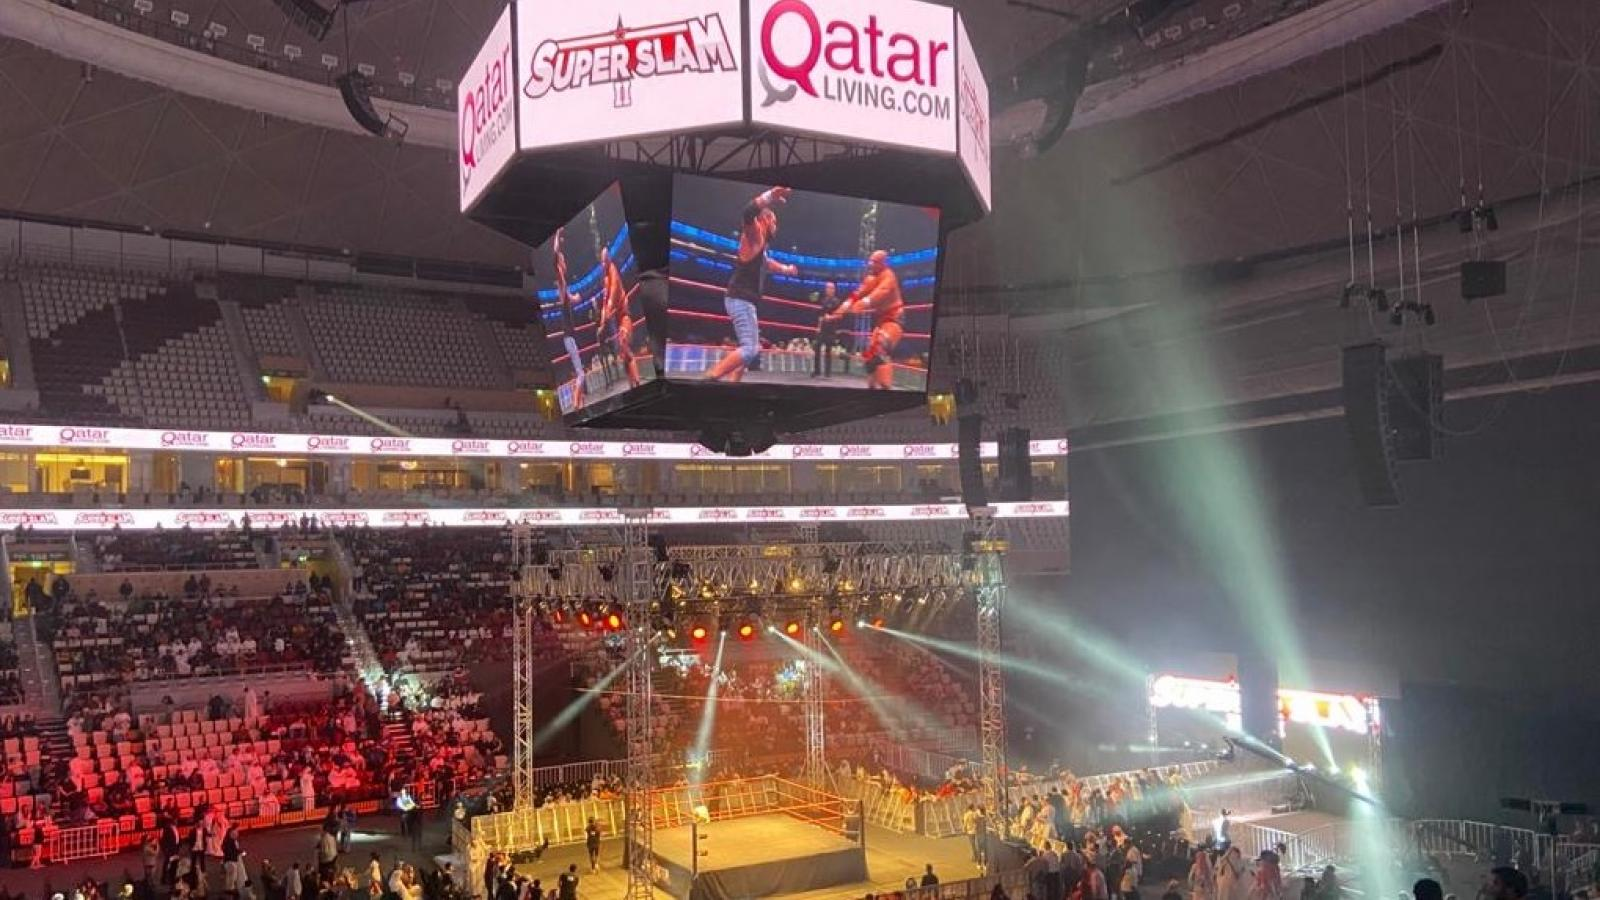 WATCH: QPW Thrills Doha with SuperSlam II show